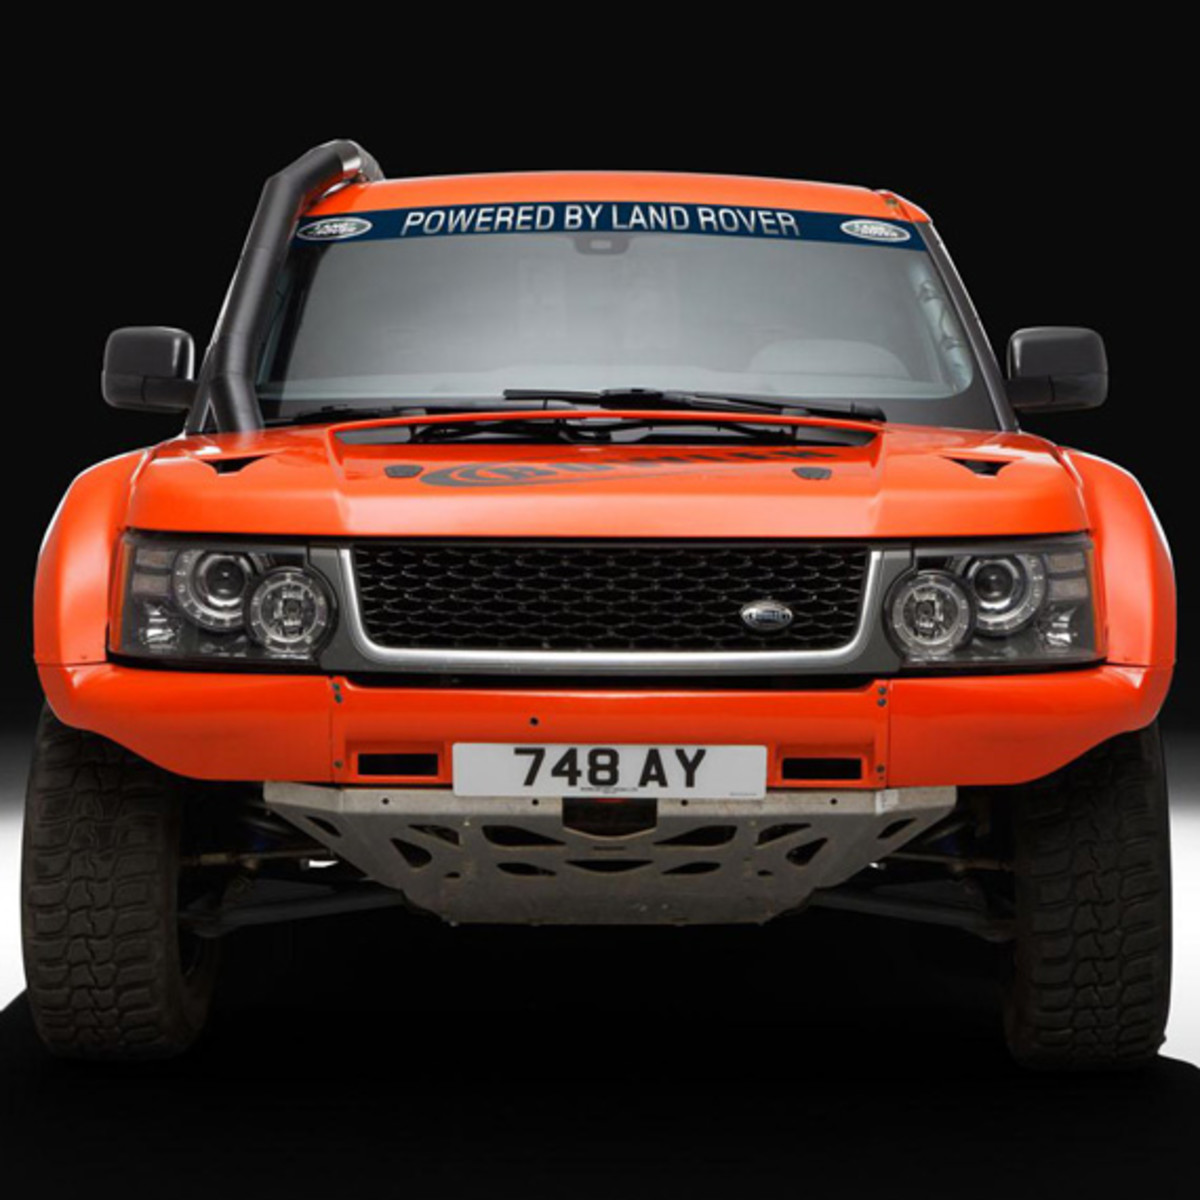 bowler-land-rover-exr-off-road-rally-car-08